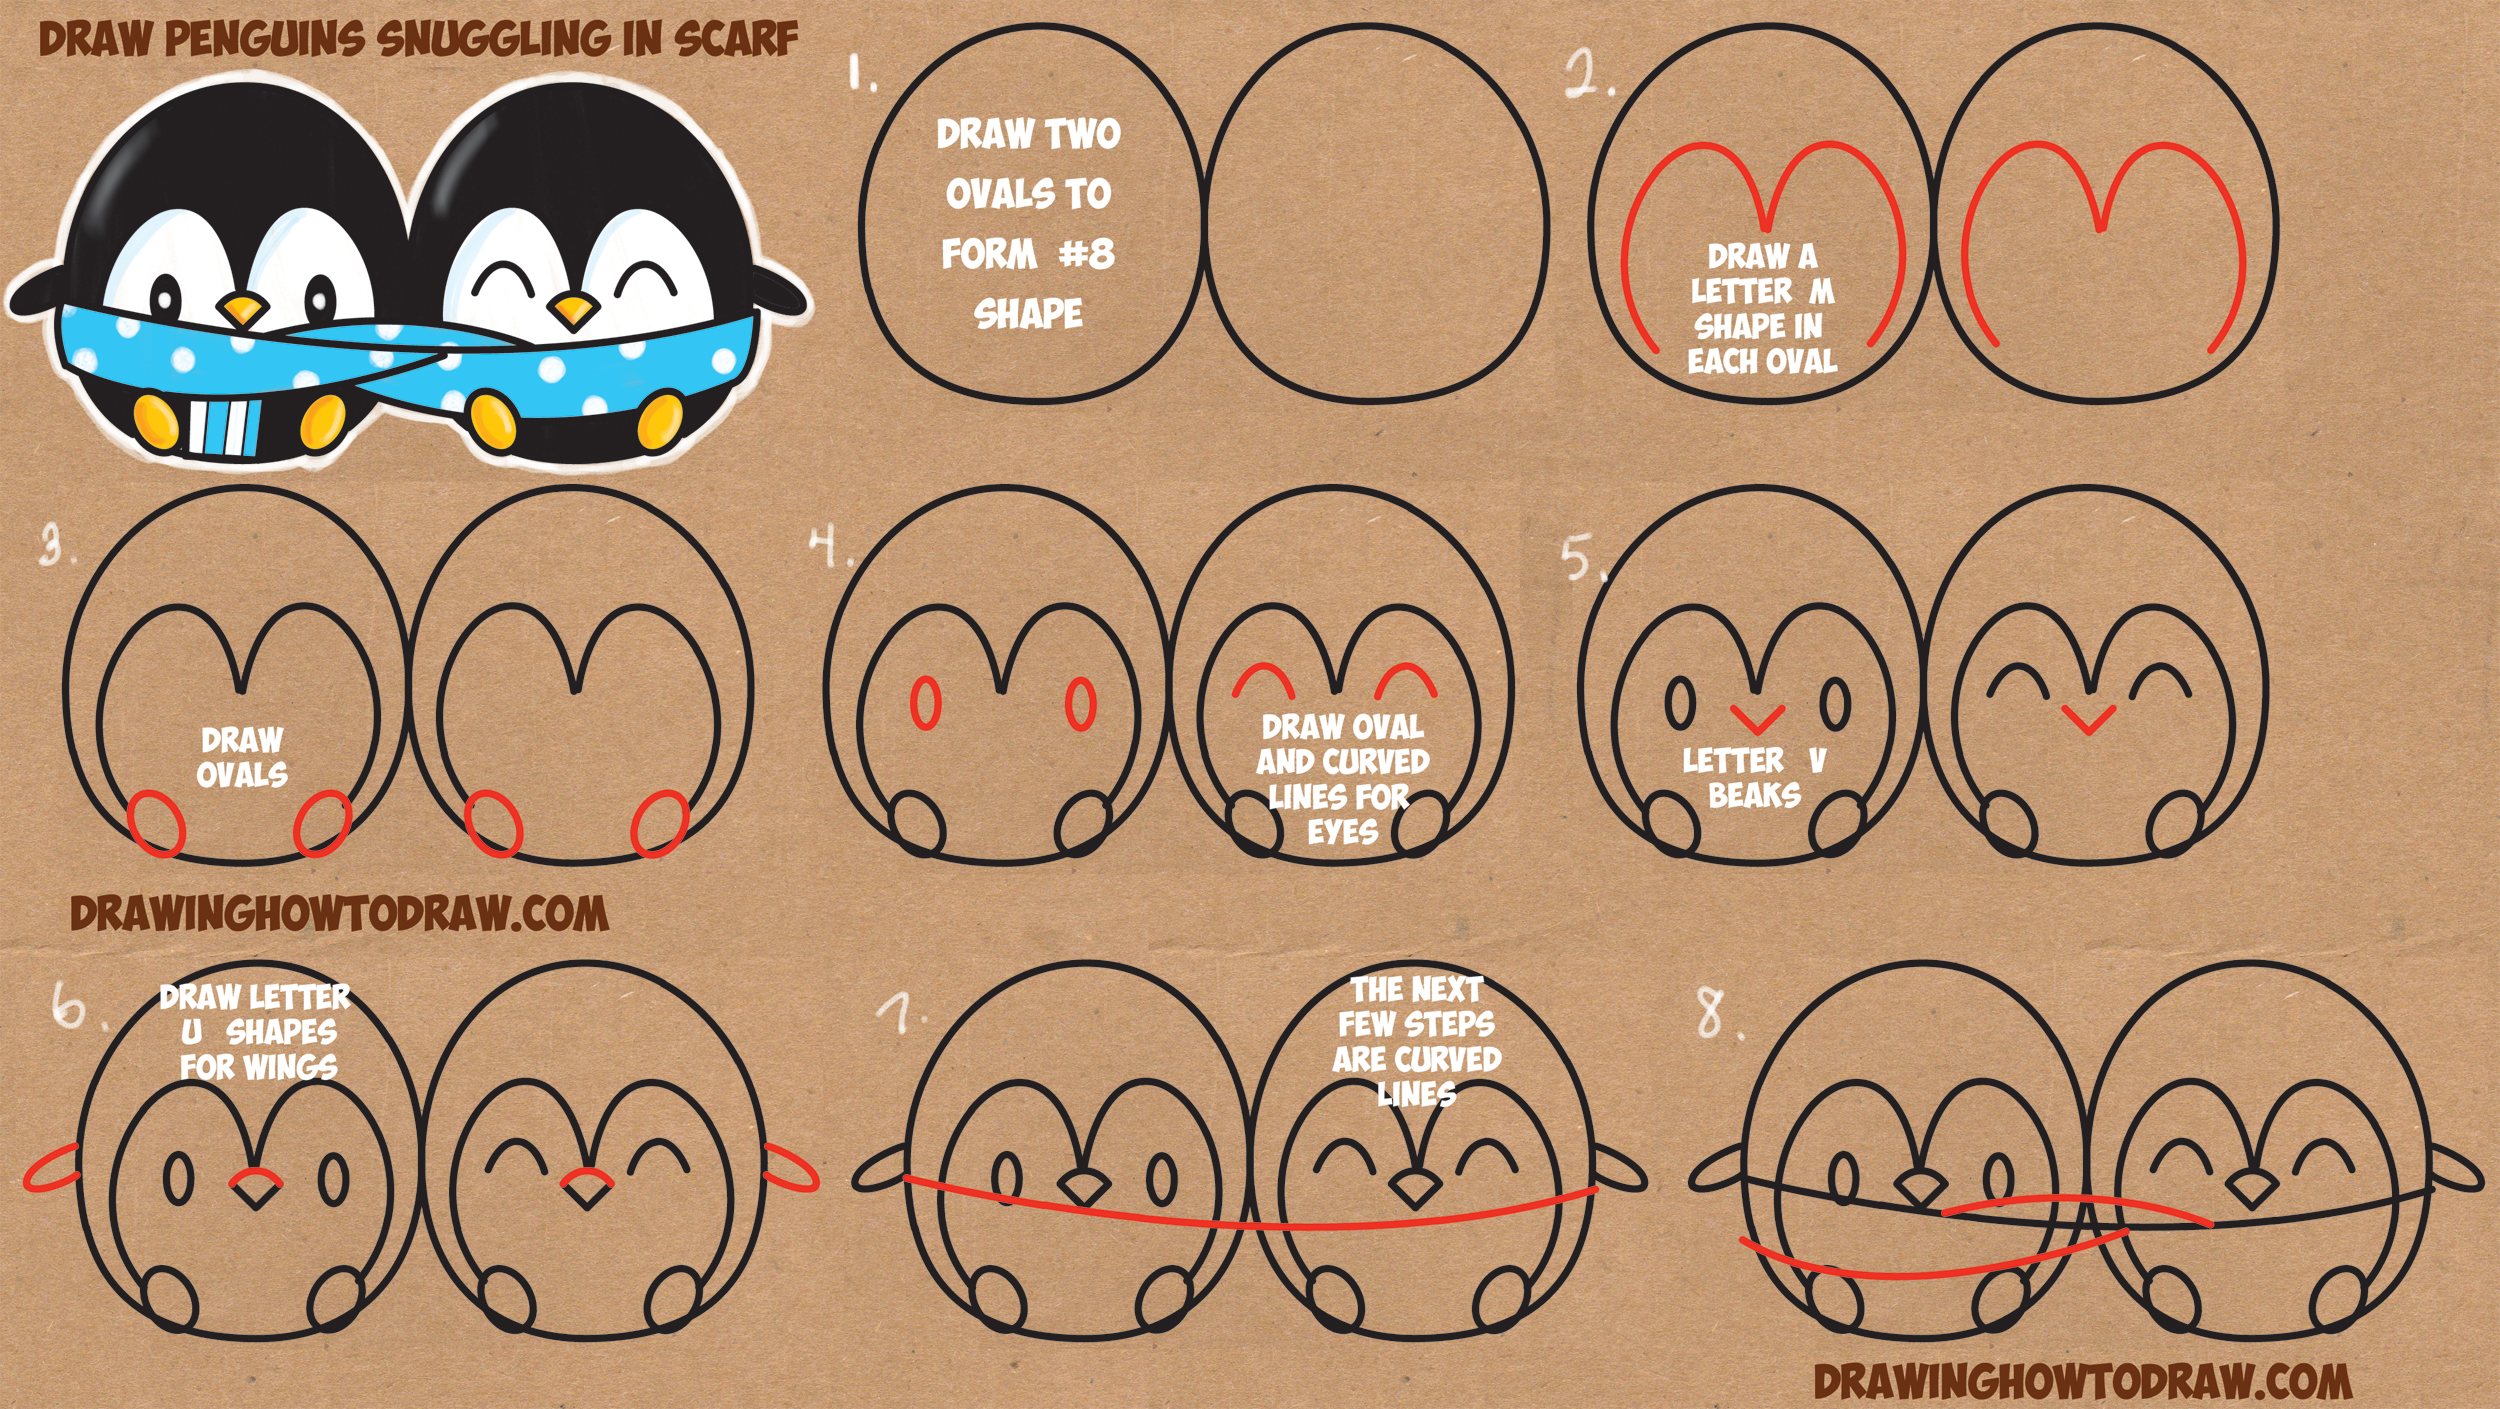 How to Draw Cute Kawaii / Chibi Cartoon Penguins in a Scarf for Winter Easy Step by Step Drawing Tutorial for Kids